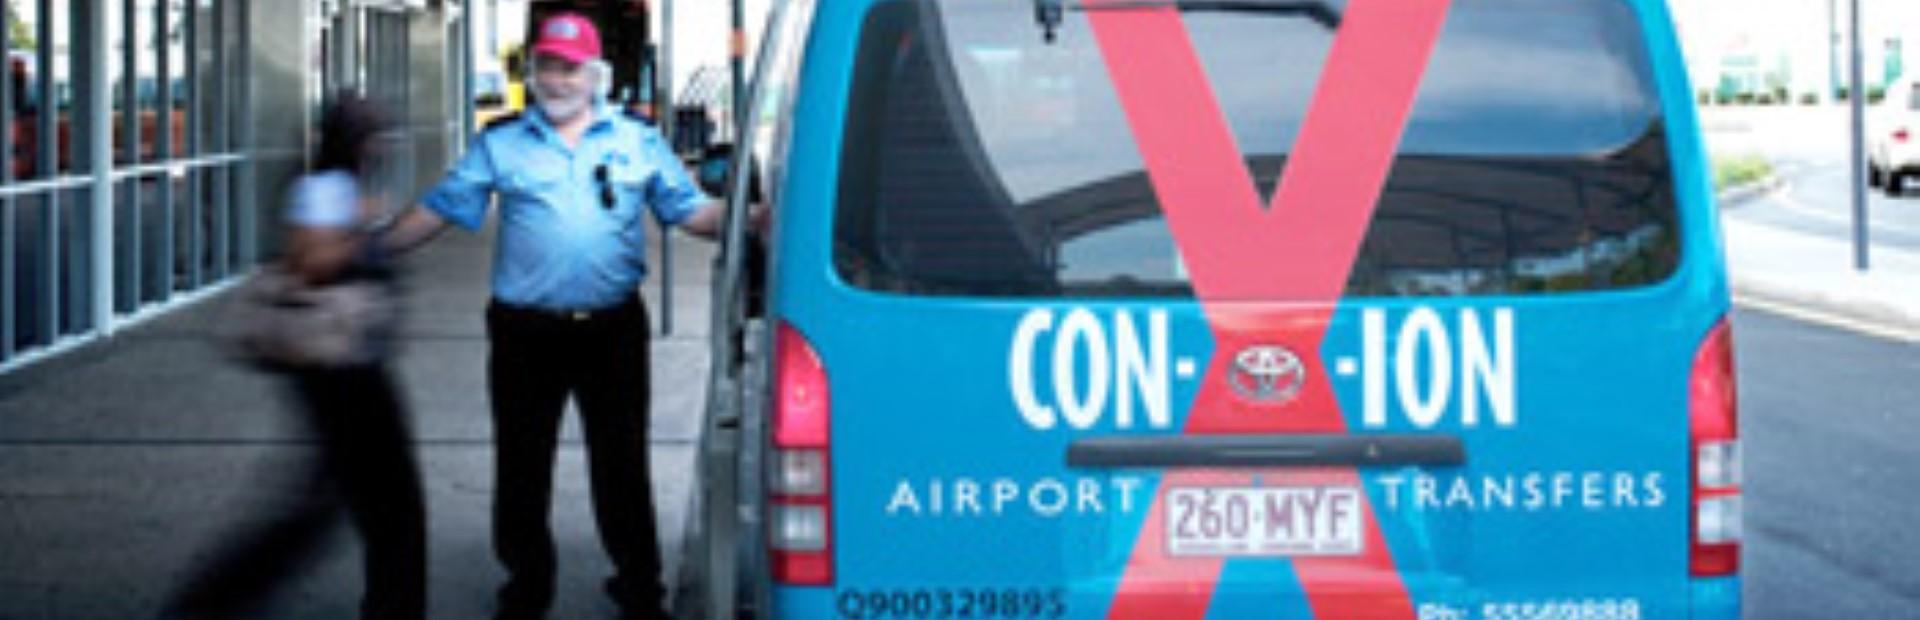 Surfers Paradise to Brisbane Airport shuttle transfer One way - Con-X-ion ( Between 6 AM to 10 PM Only )